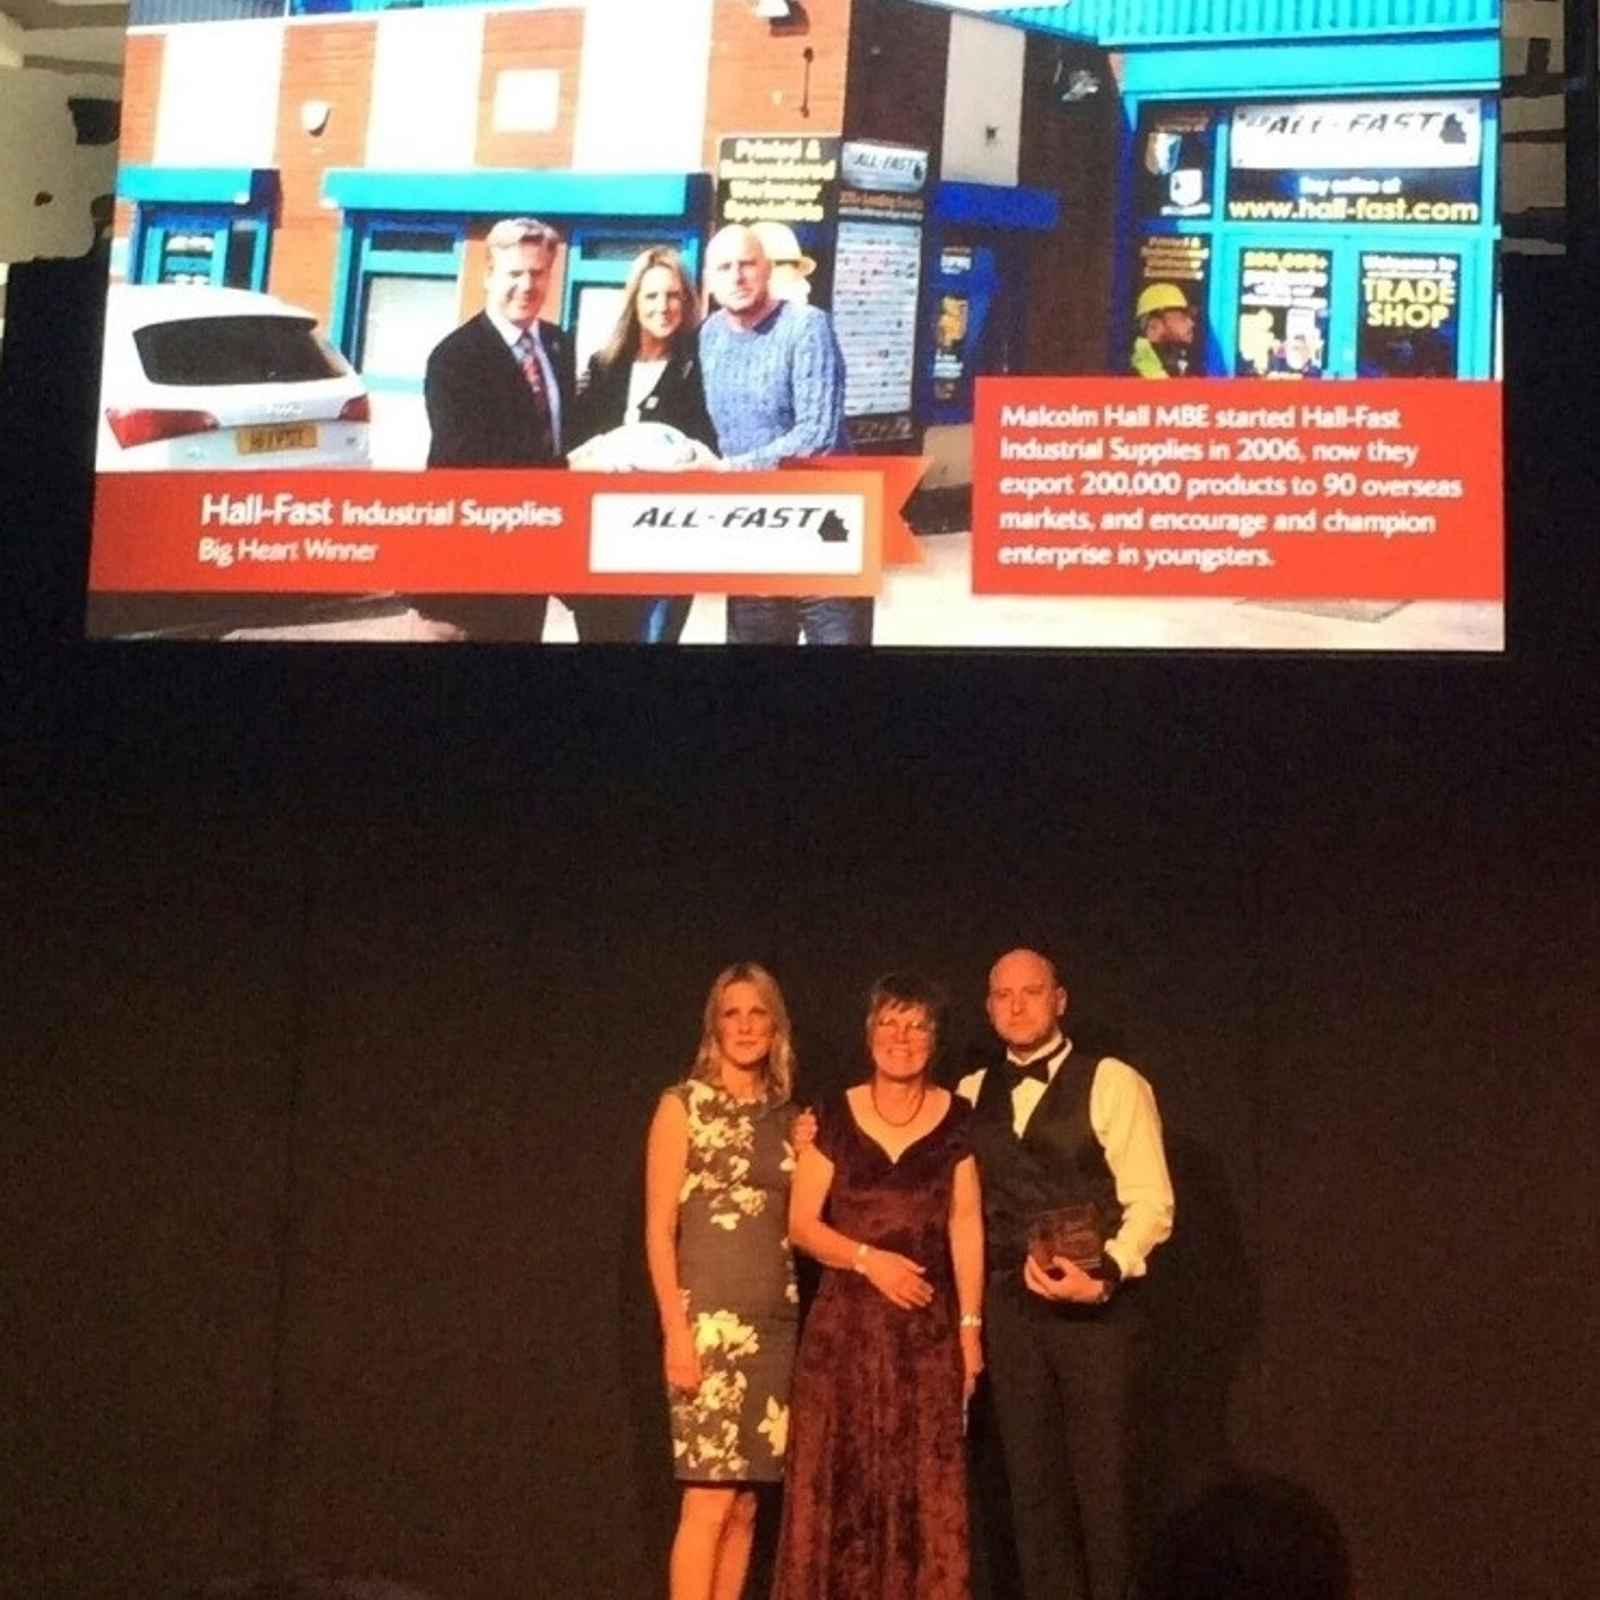 Paviors Sponsor Hall-Fast came away from Wembley as winners at the National Family Business Place Red Ribbons awards.